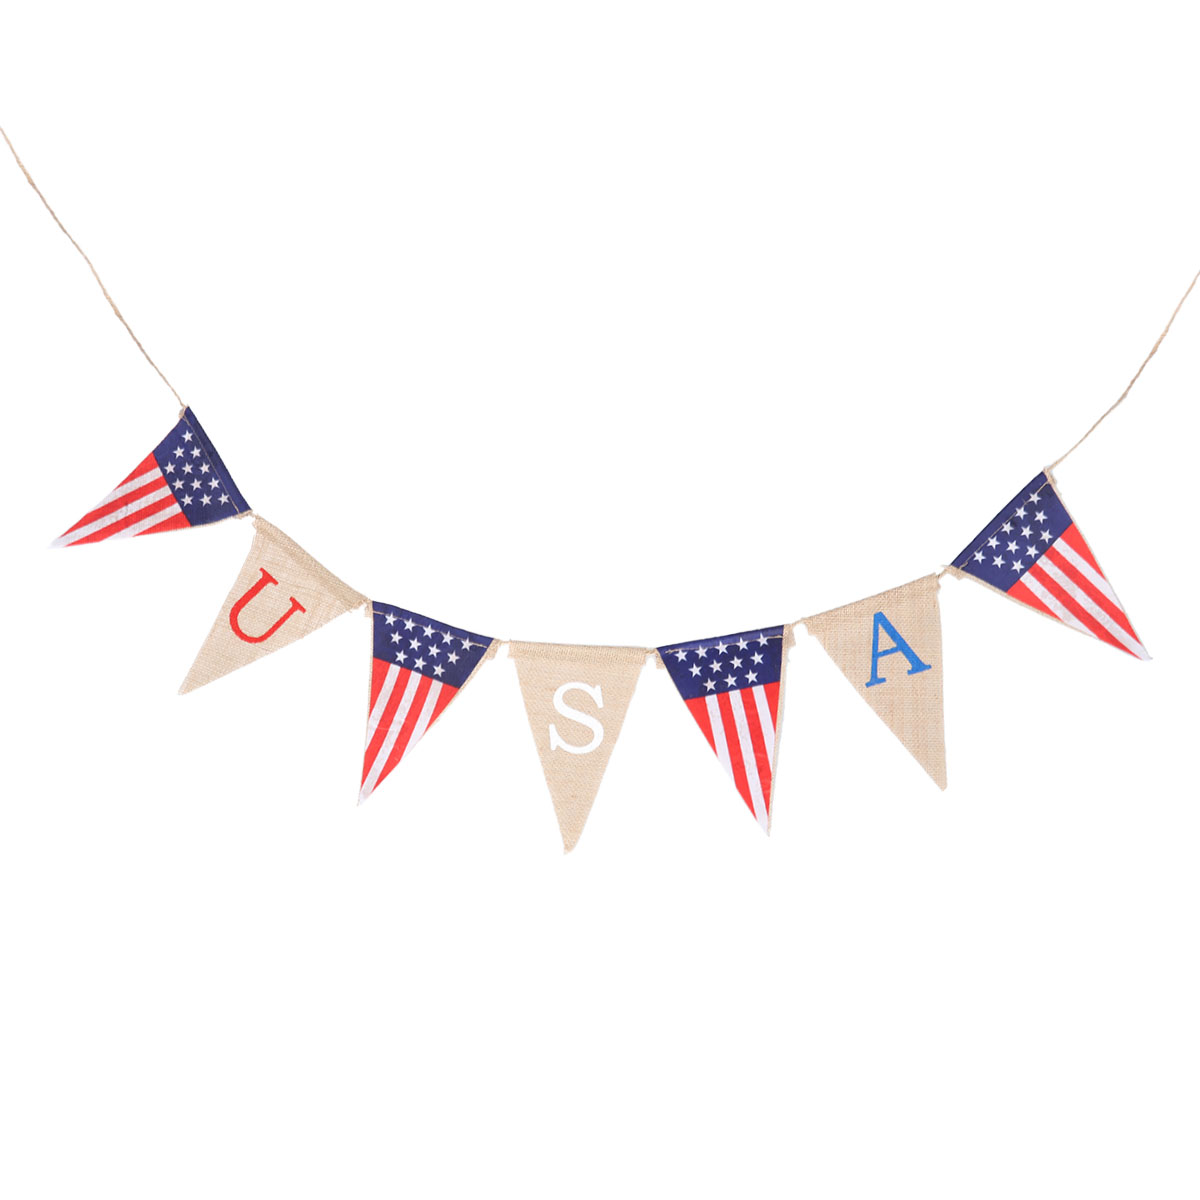 American USA July 4th Party Event Celebration 6 x Pennant Flag Decorations